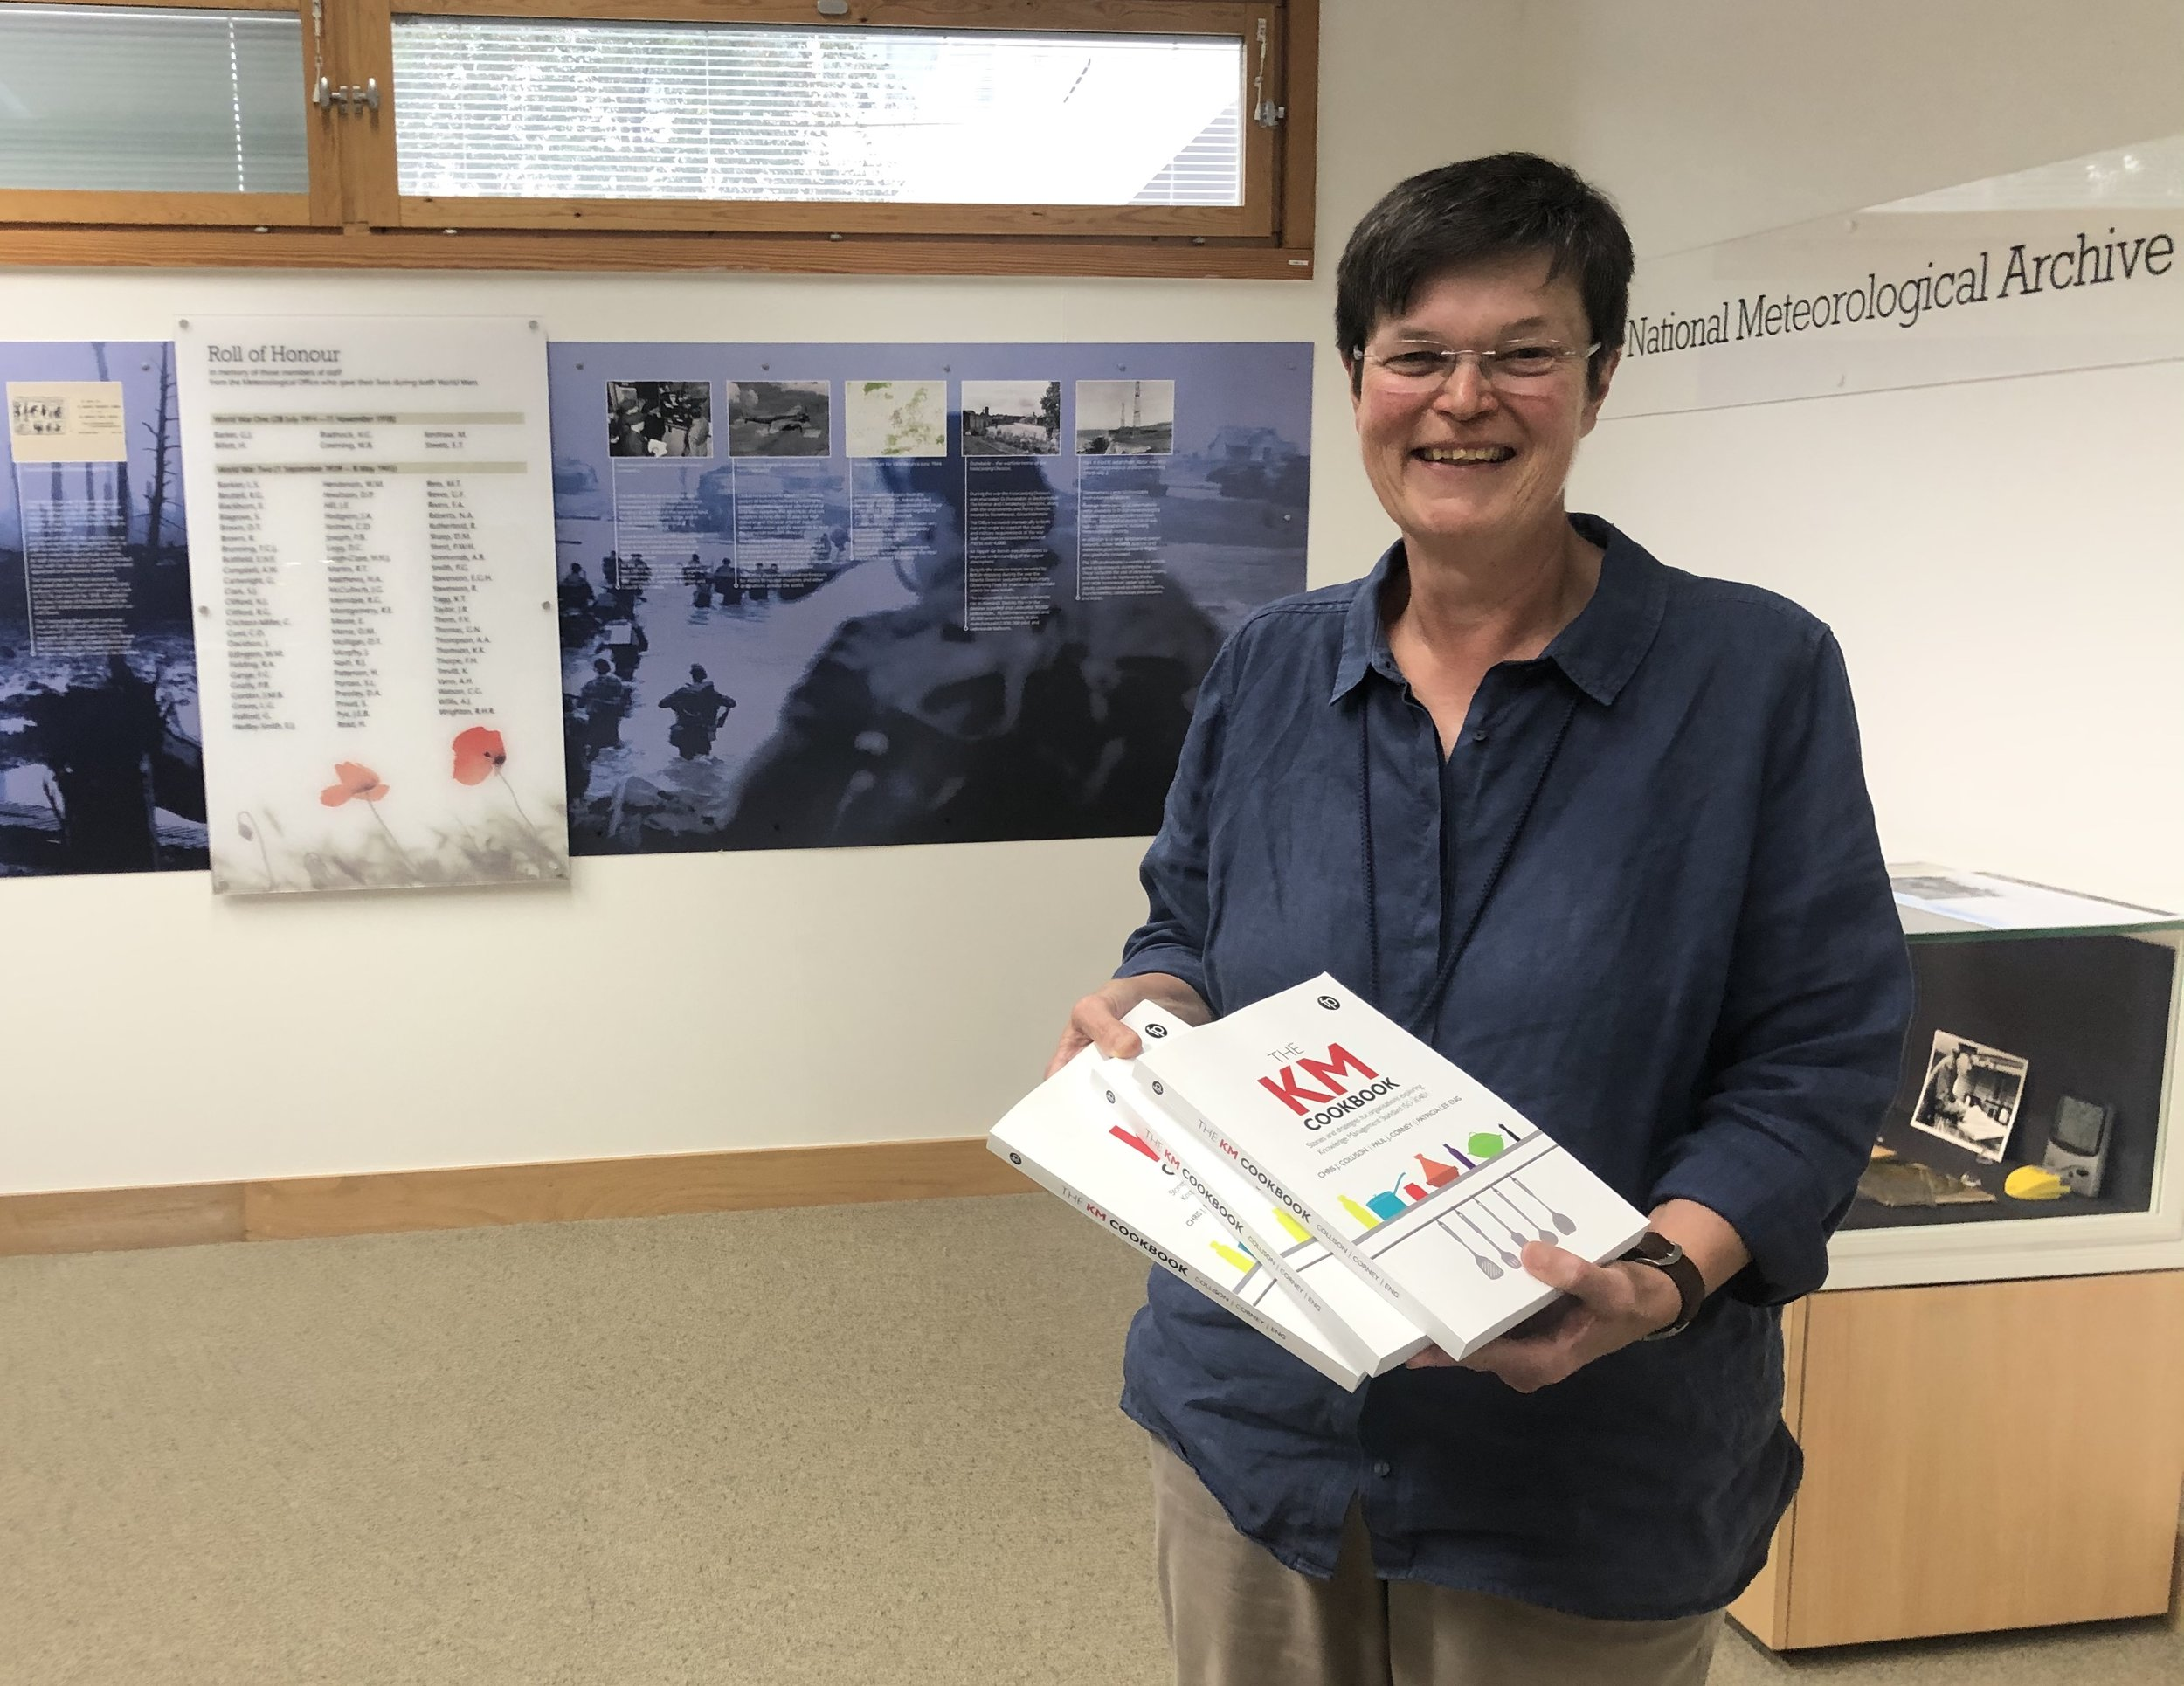 Susan Tucker, Head of Knowledge and Information Management at the UK's Met Office shows off her cookbook copies.